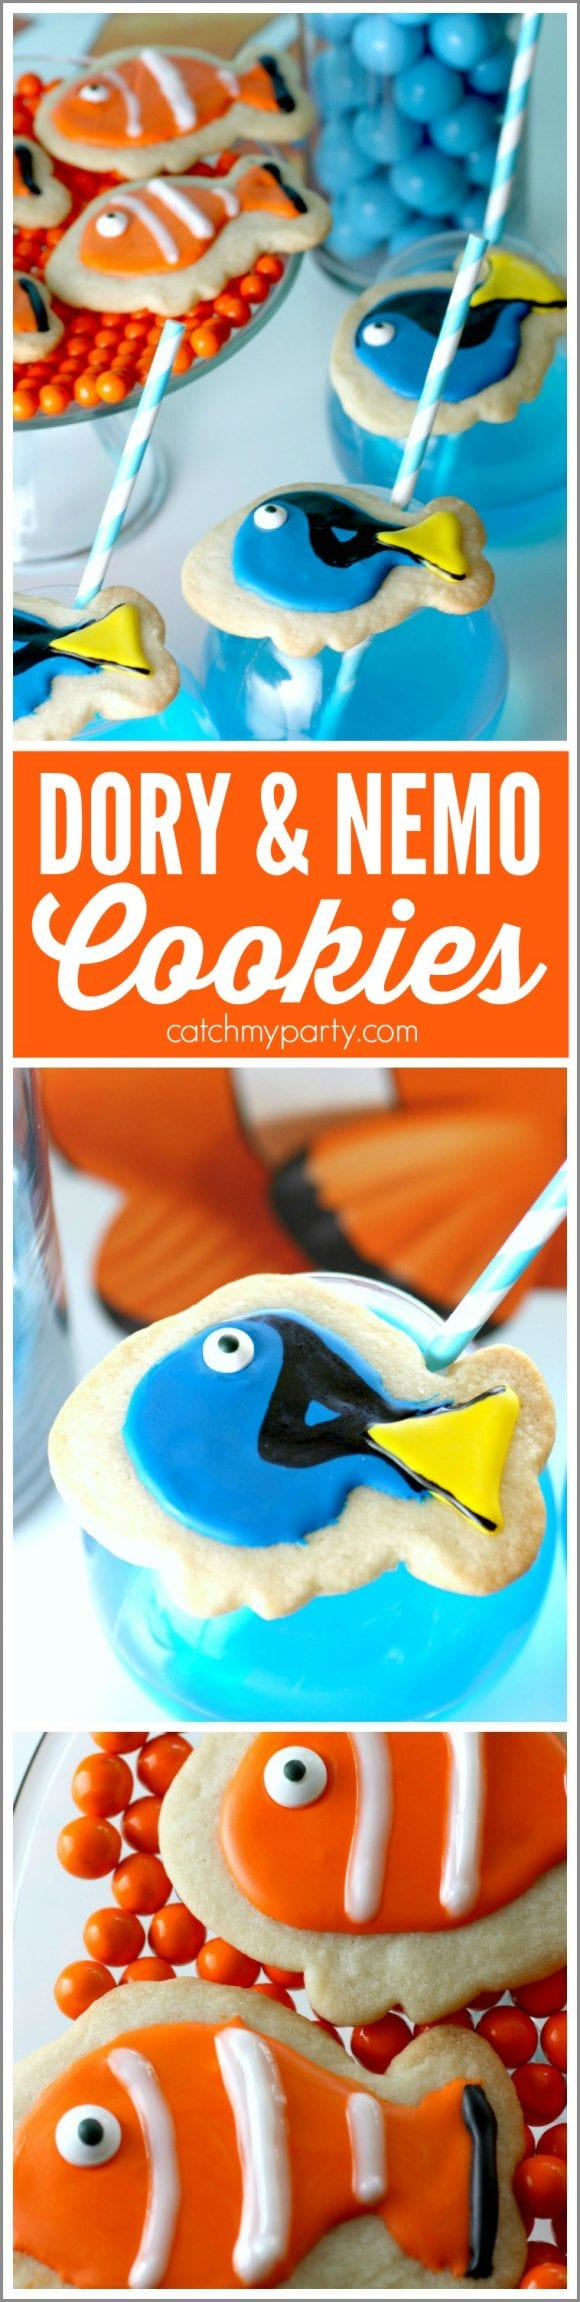 Finding Dory & Finding Nemo Cookies | CatchMyParty.com